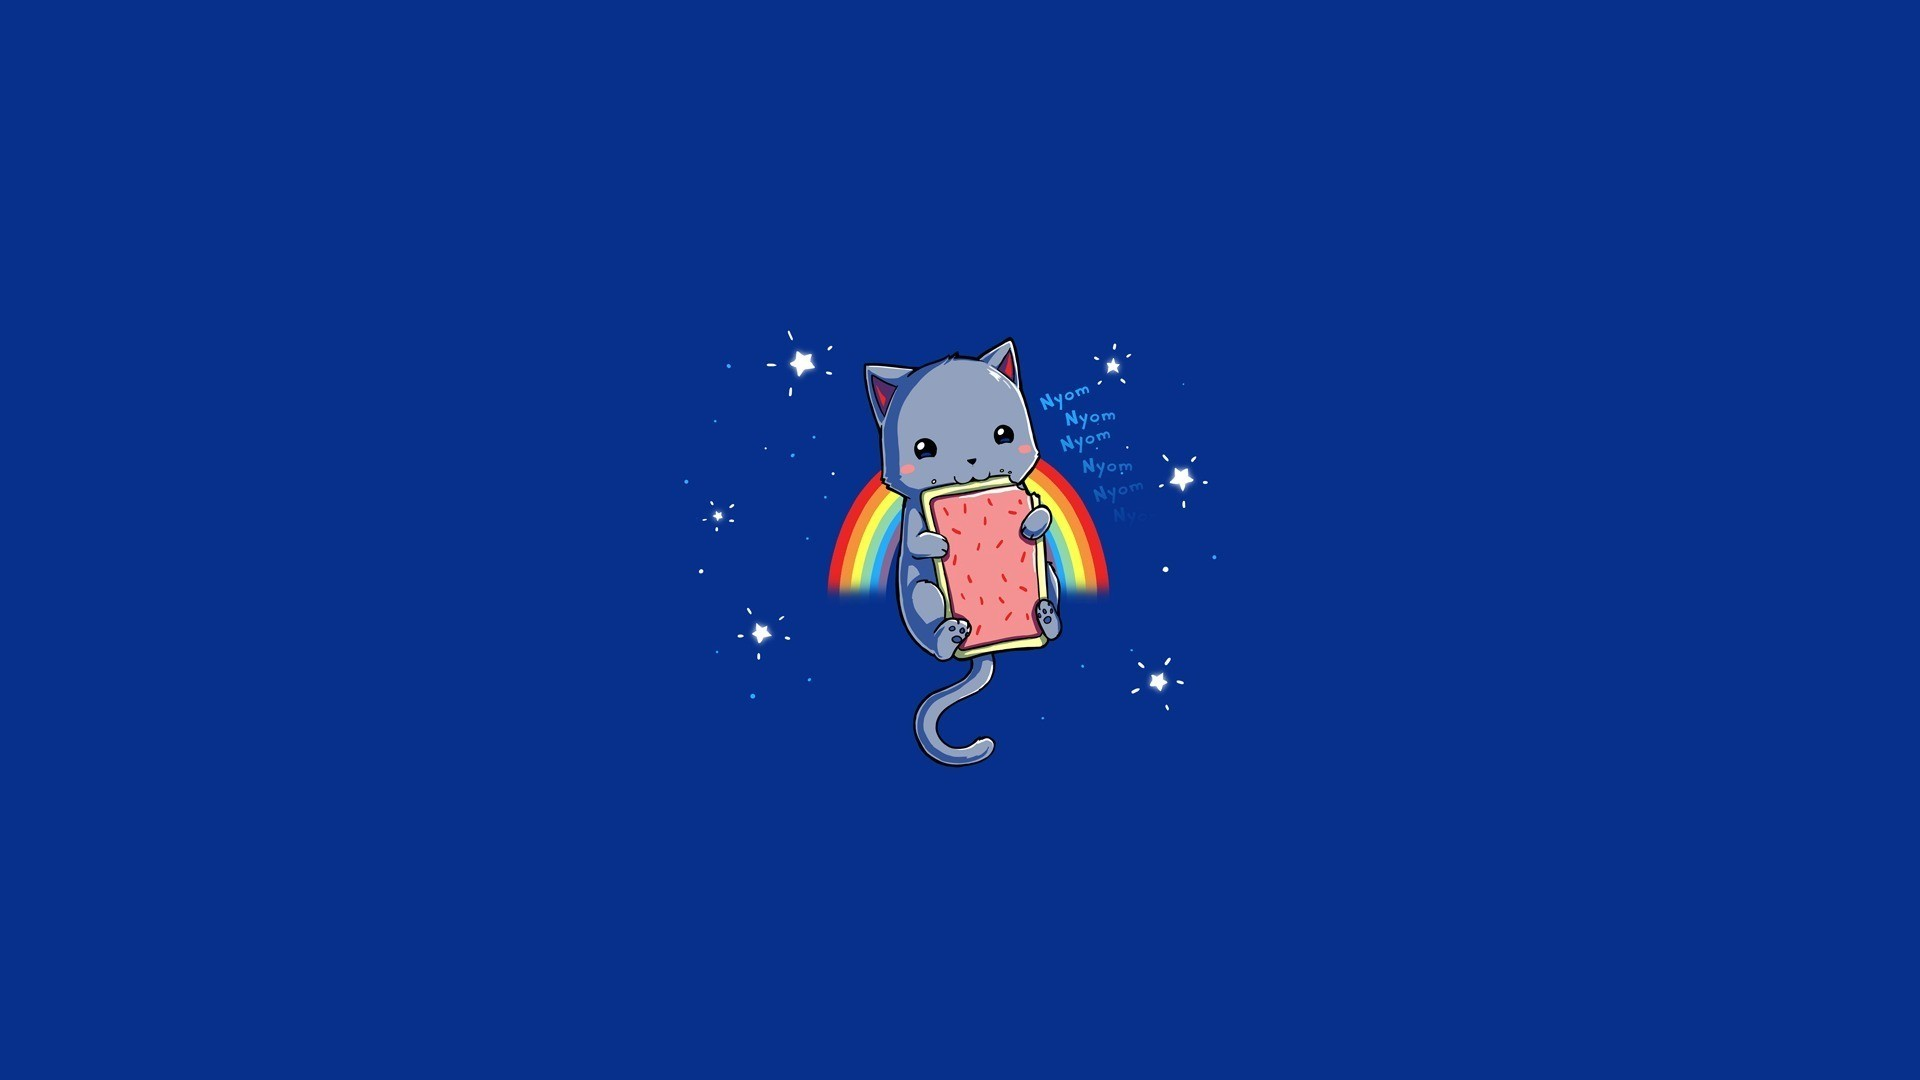 1920x1080 Cartoon - Nyan Cat Rainbow Blue Meme Wallpaper